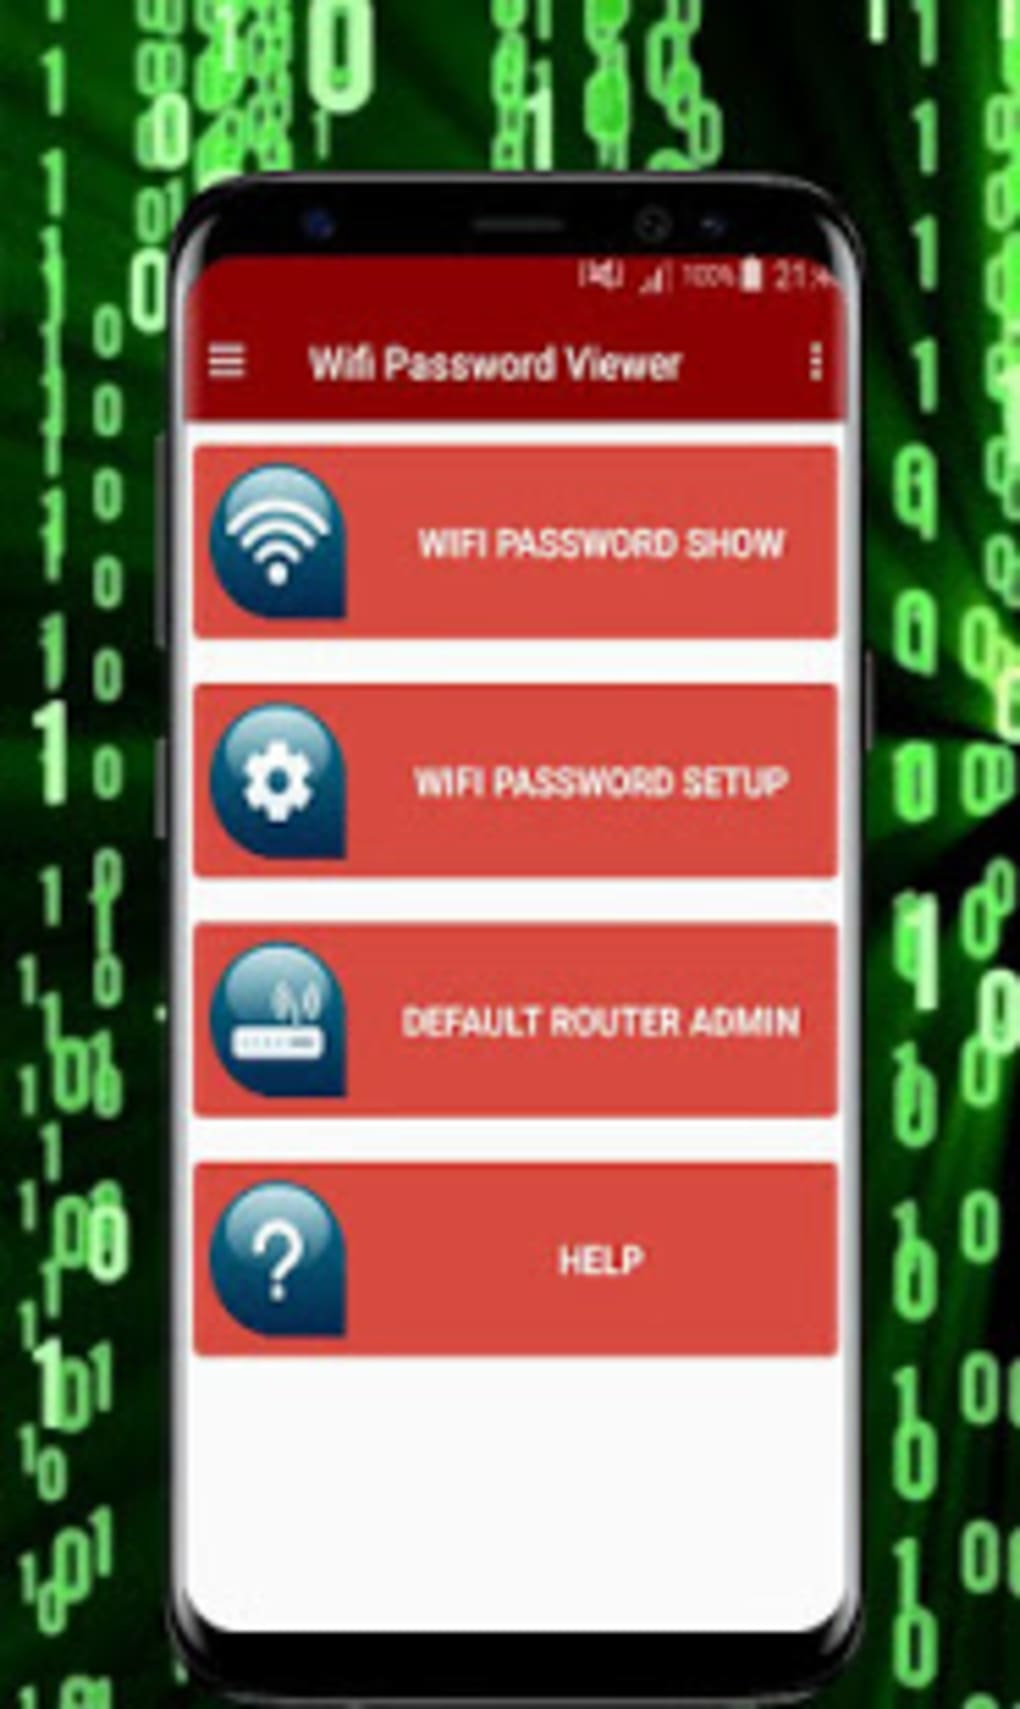 Wifi password viewer - show wifi password for Android - Download